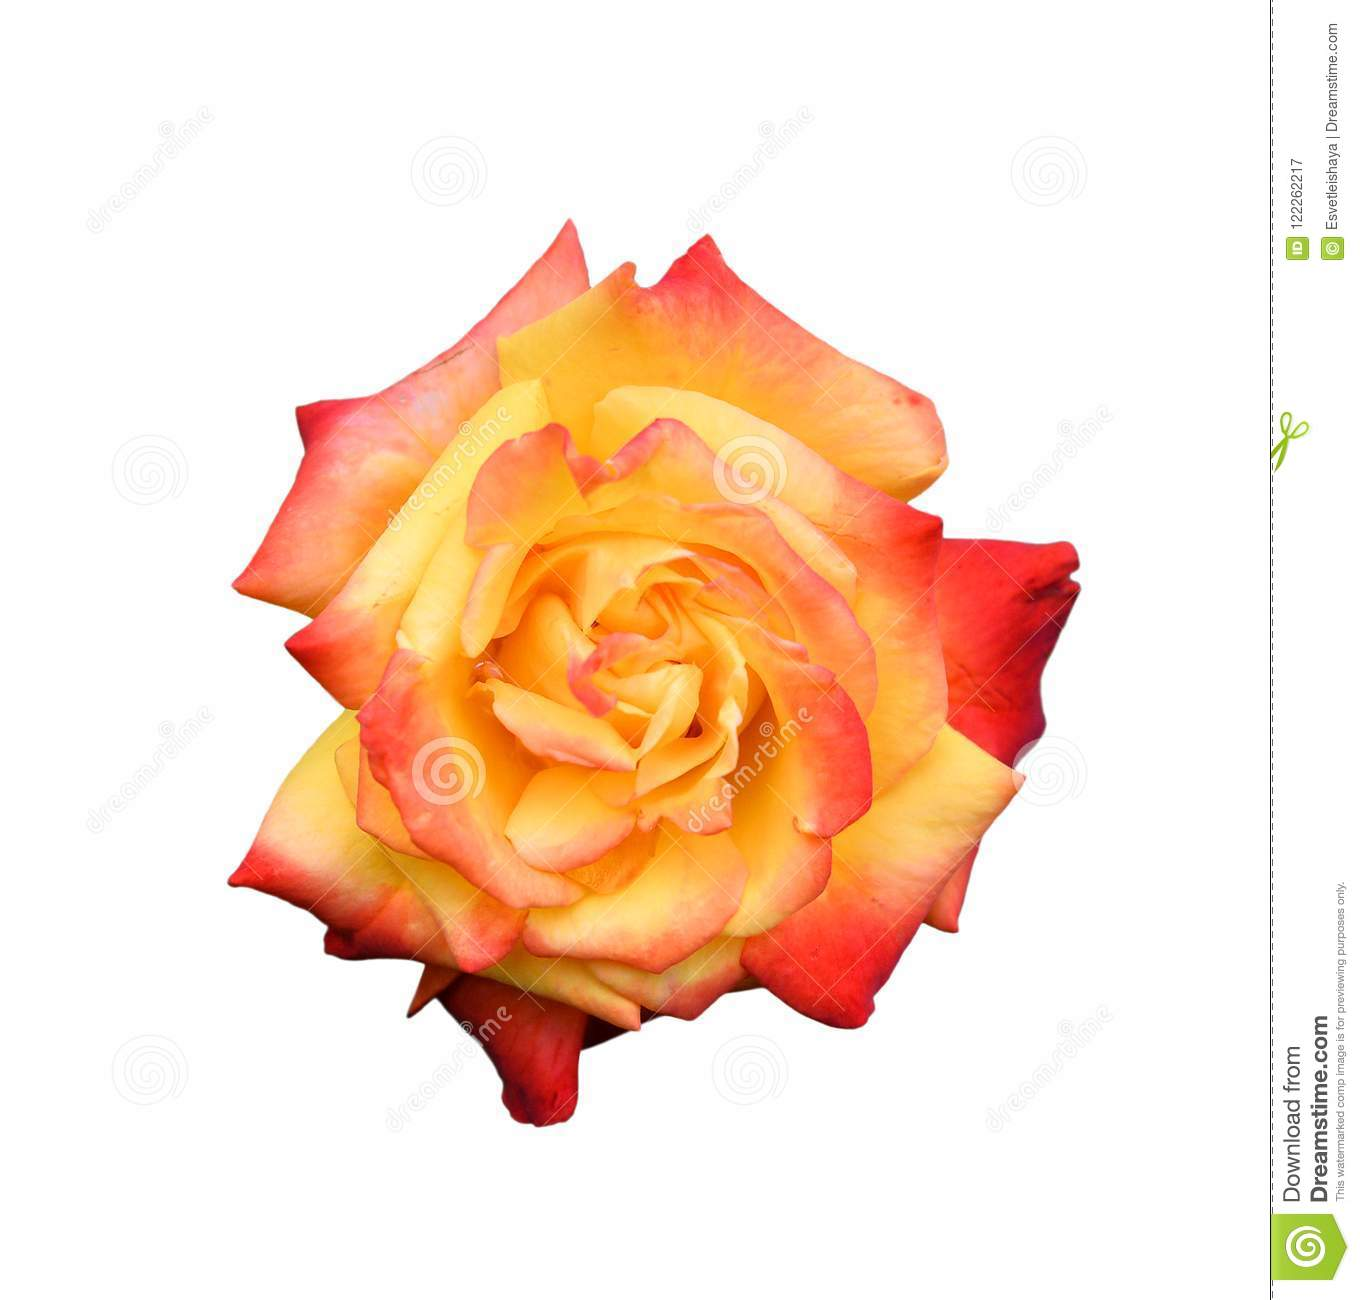 Rose head close up isolated on white background. Pink and orange rose flower on white background